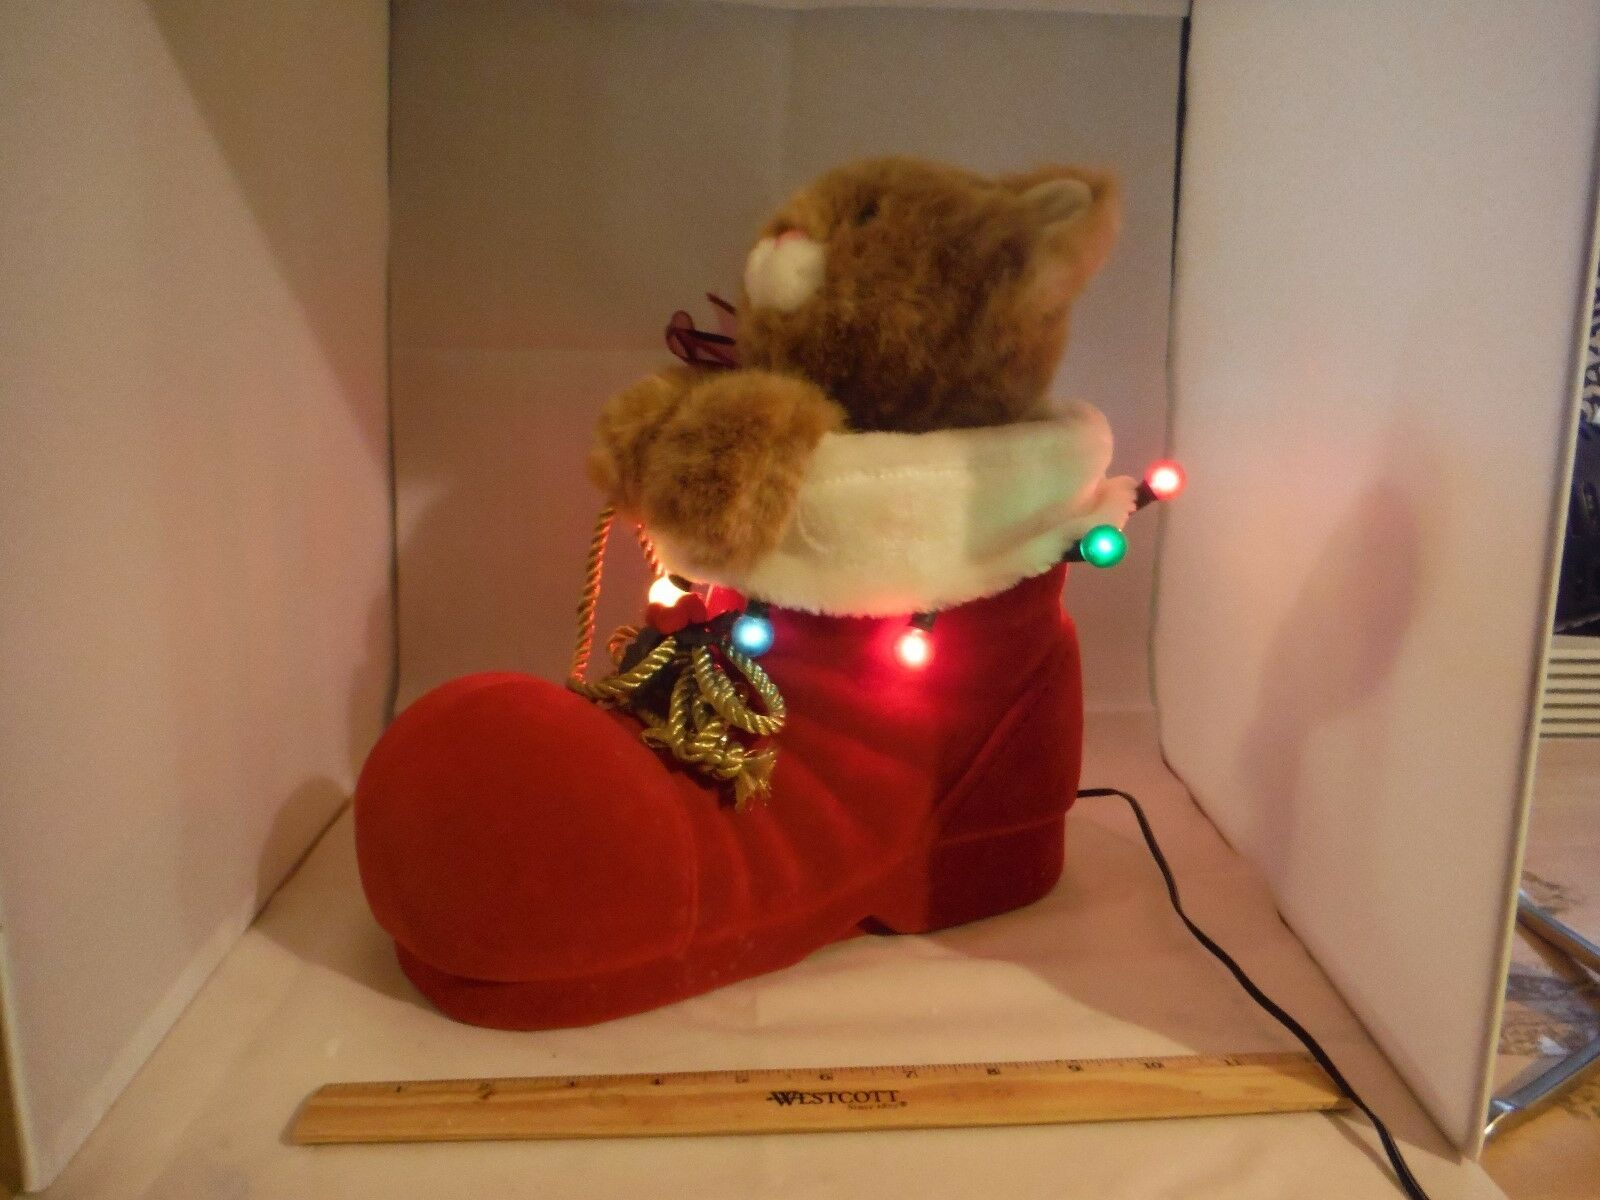 ULTRA ULTRA ULTRA RARE Santa's Best Moving Cat In Santa's Lighted Stiefel Display MIB d9c601